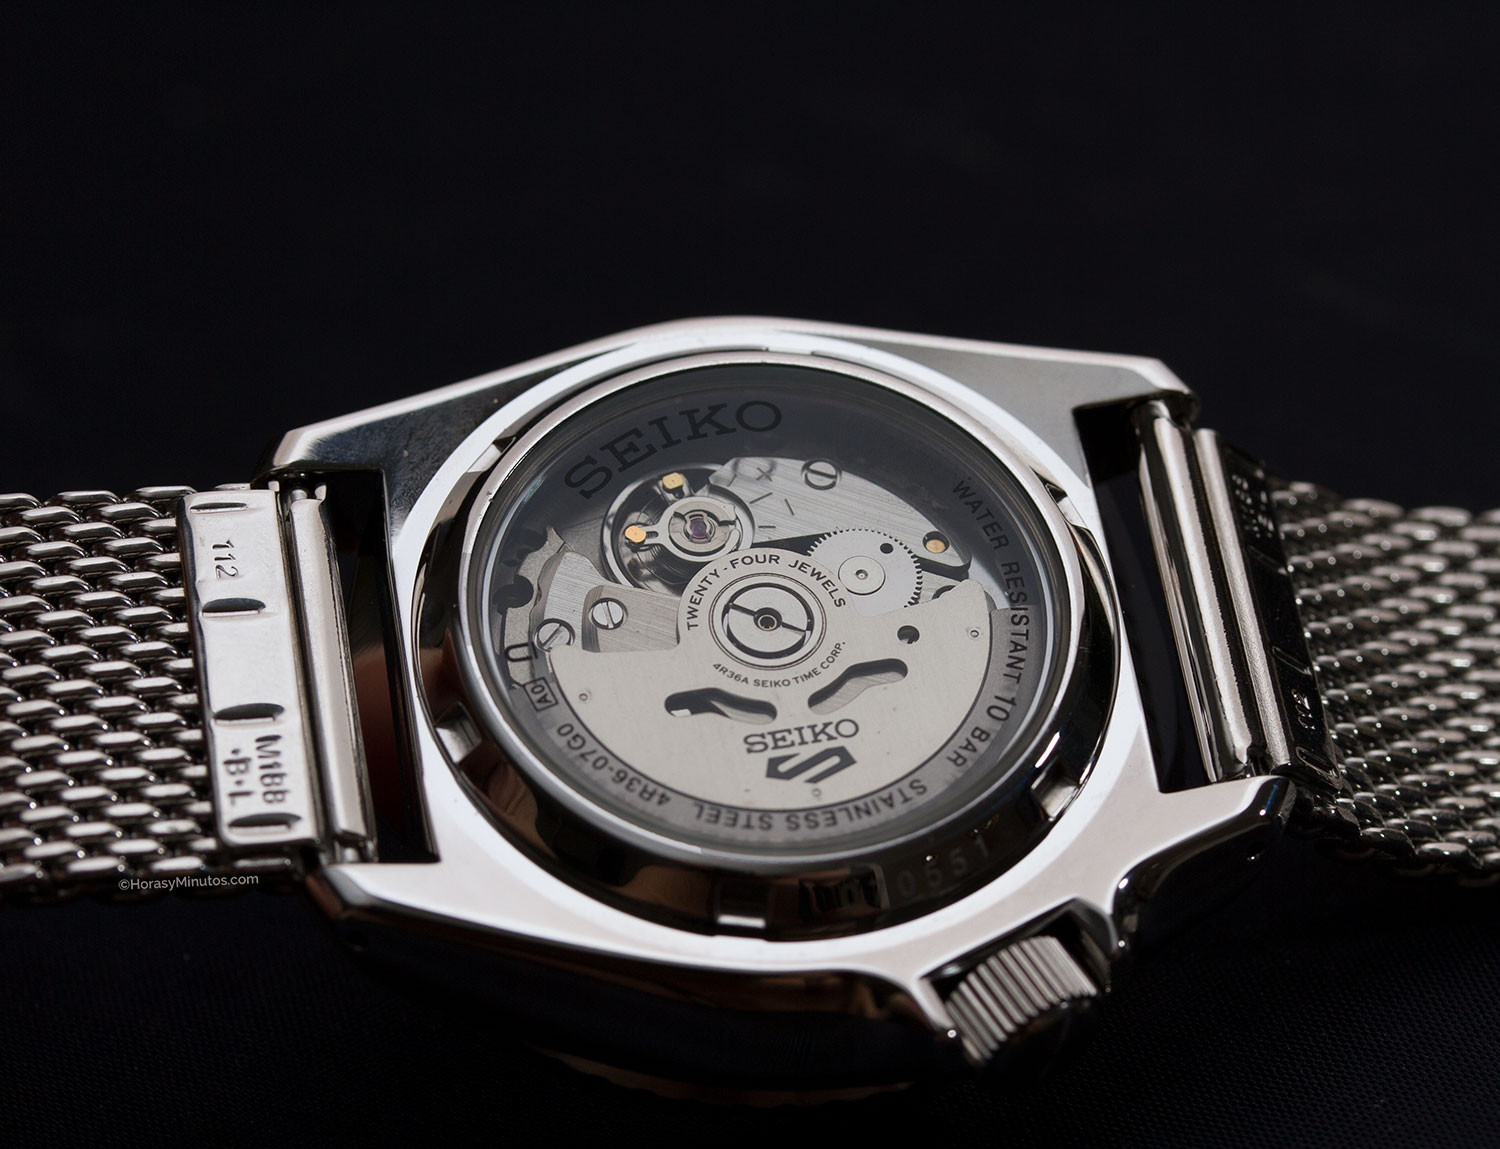 Calibre 4R36 del Seiko 5 Sports